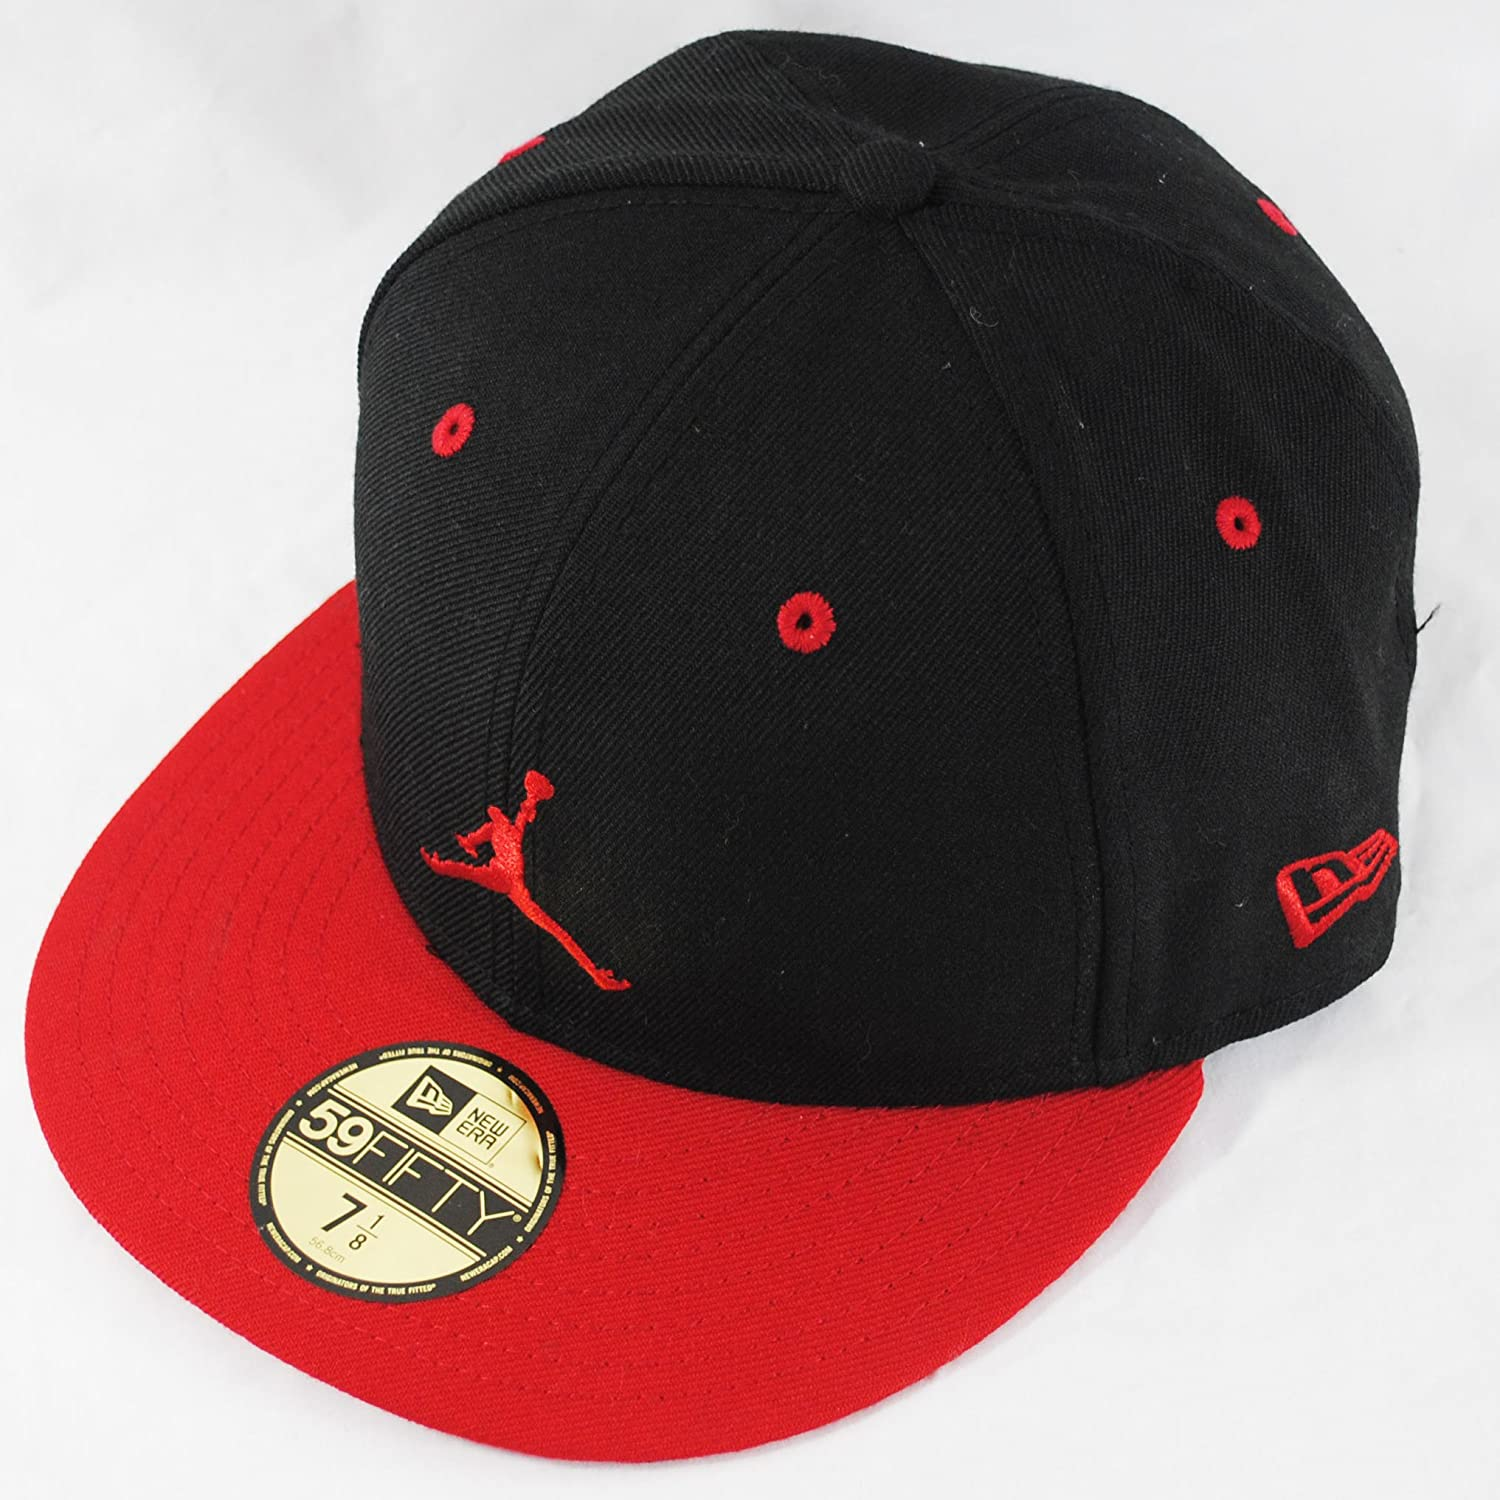 7800e5d7108a94 New Era 59fifty Michael Jordan Basketball Black Red Flat Peak Fitted Hat Cap:  Amazon.co.uk: Clothing